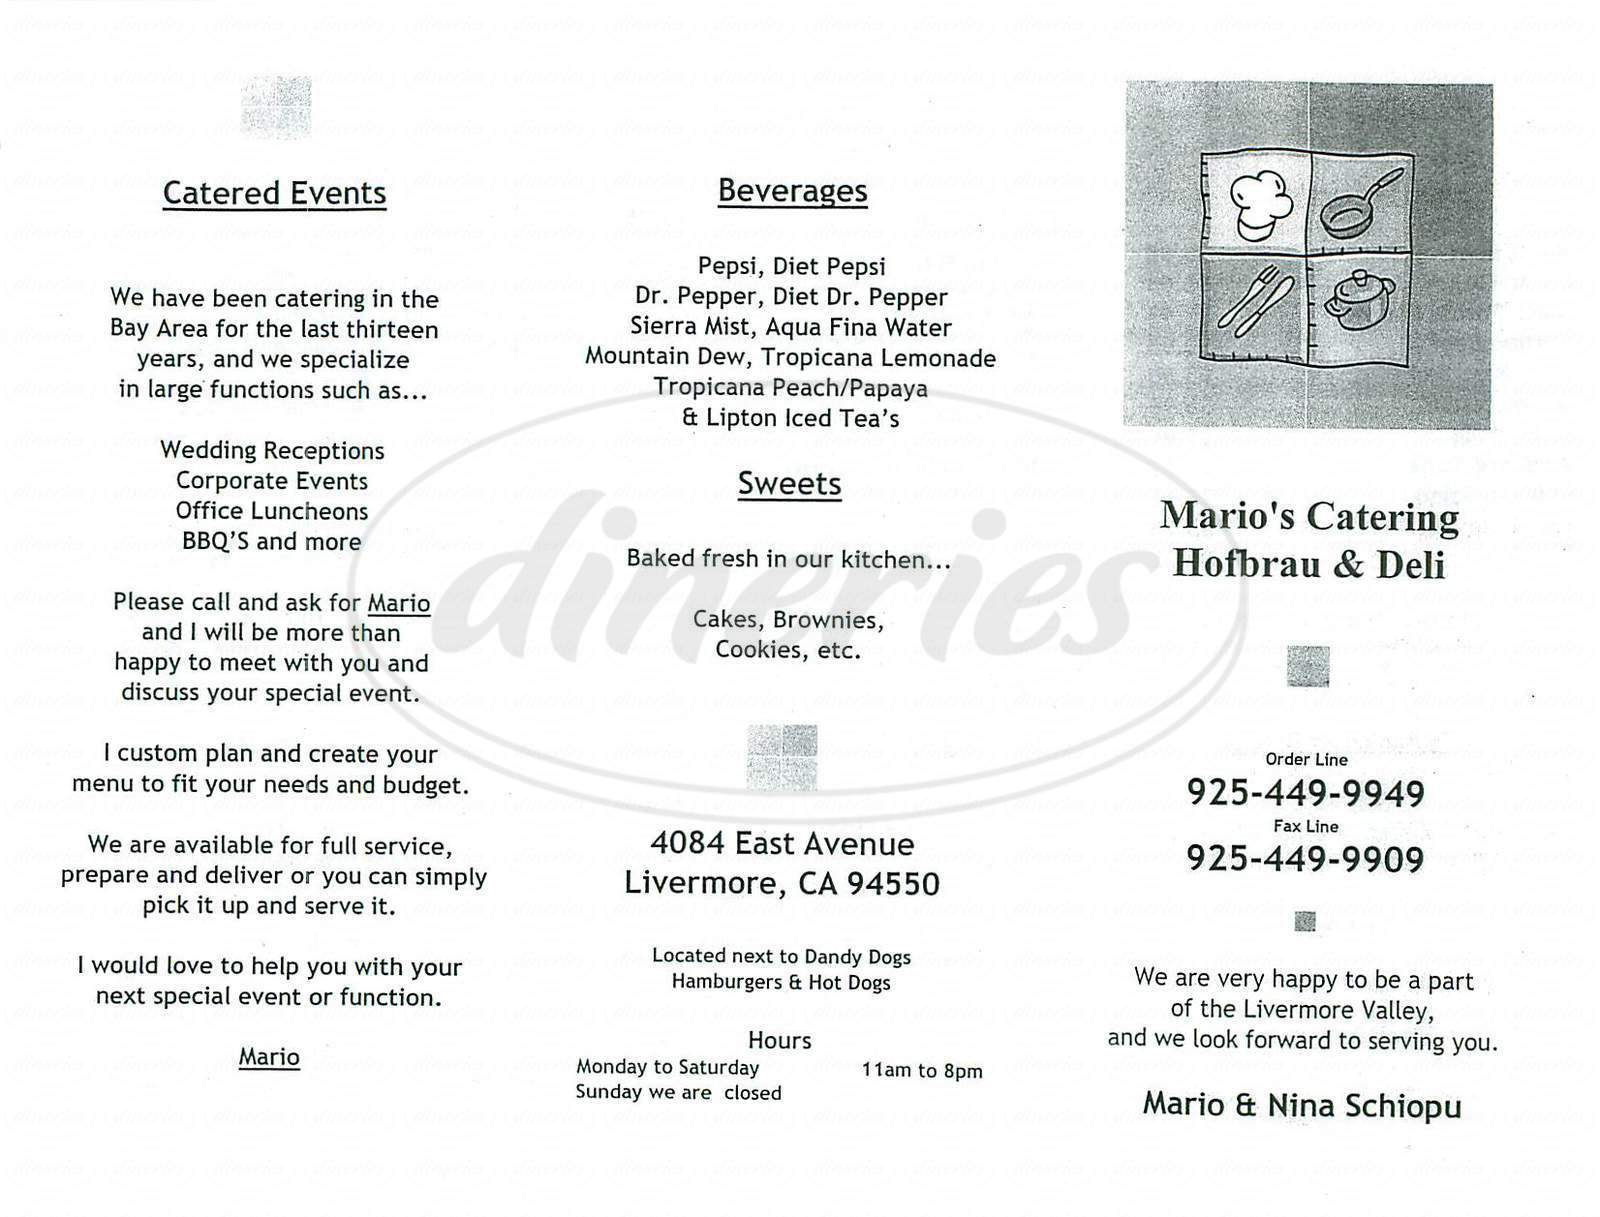 menu for Mario's Hofbrau & Deli